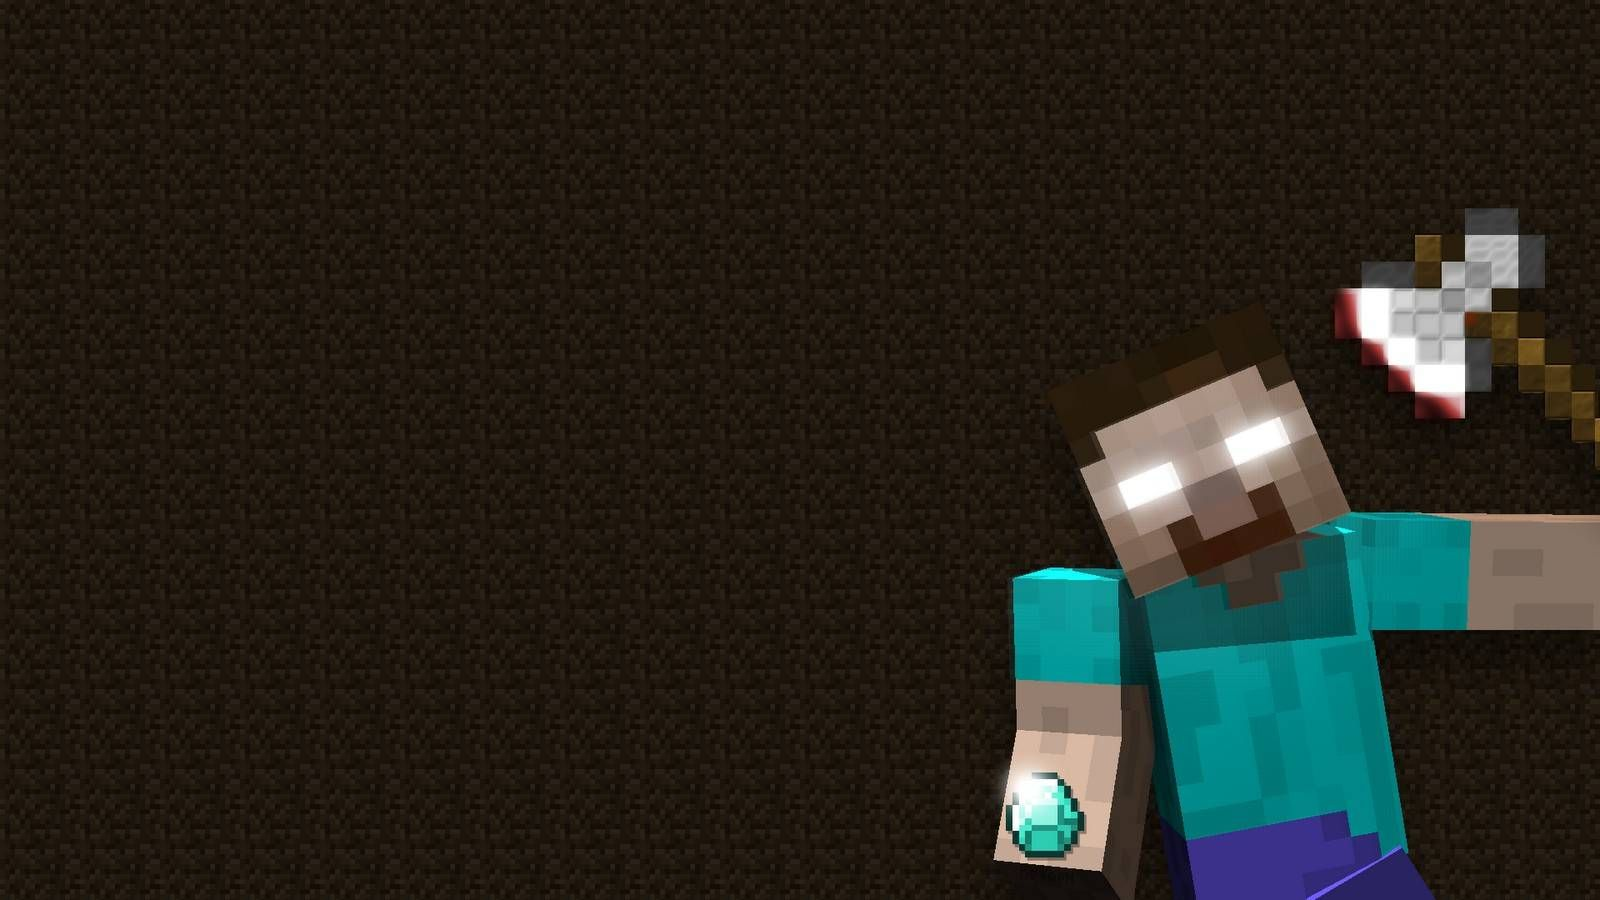 Cool Wallpaper Minecraft Android - 2447dc12421ff687e57781e3162034c2  Perfect Image Reference_508619.jpg